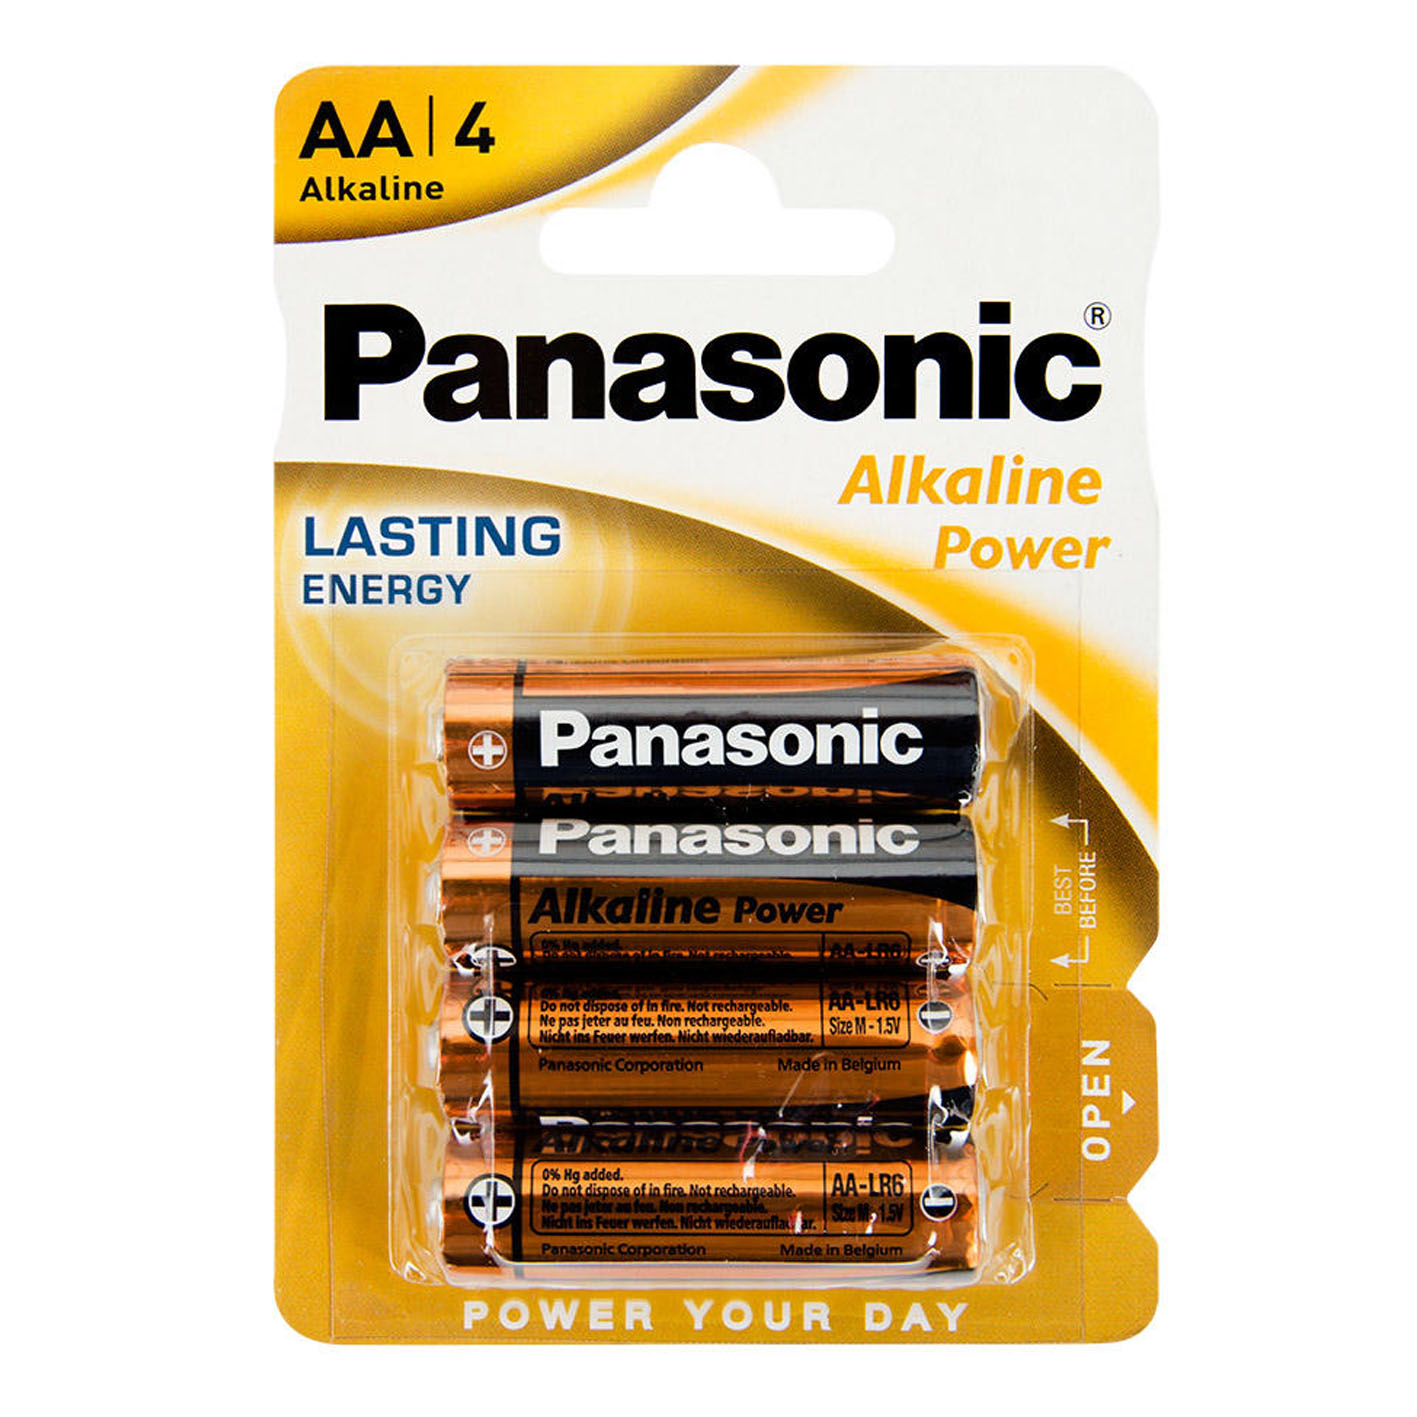 Panasonic Alkaline Power Kalem Pil